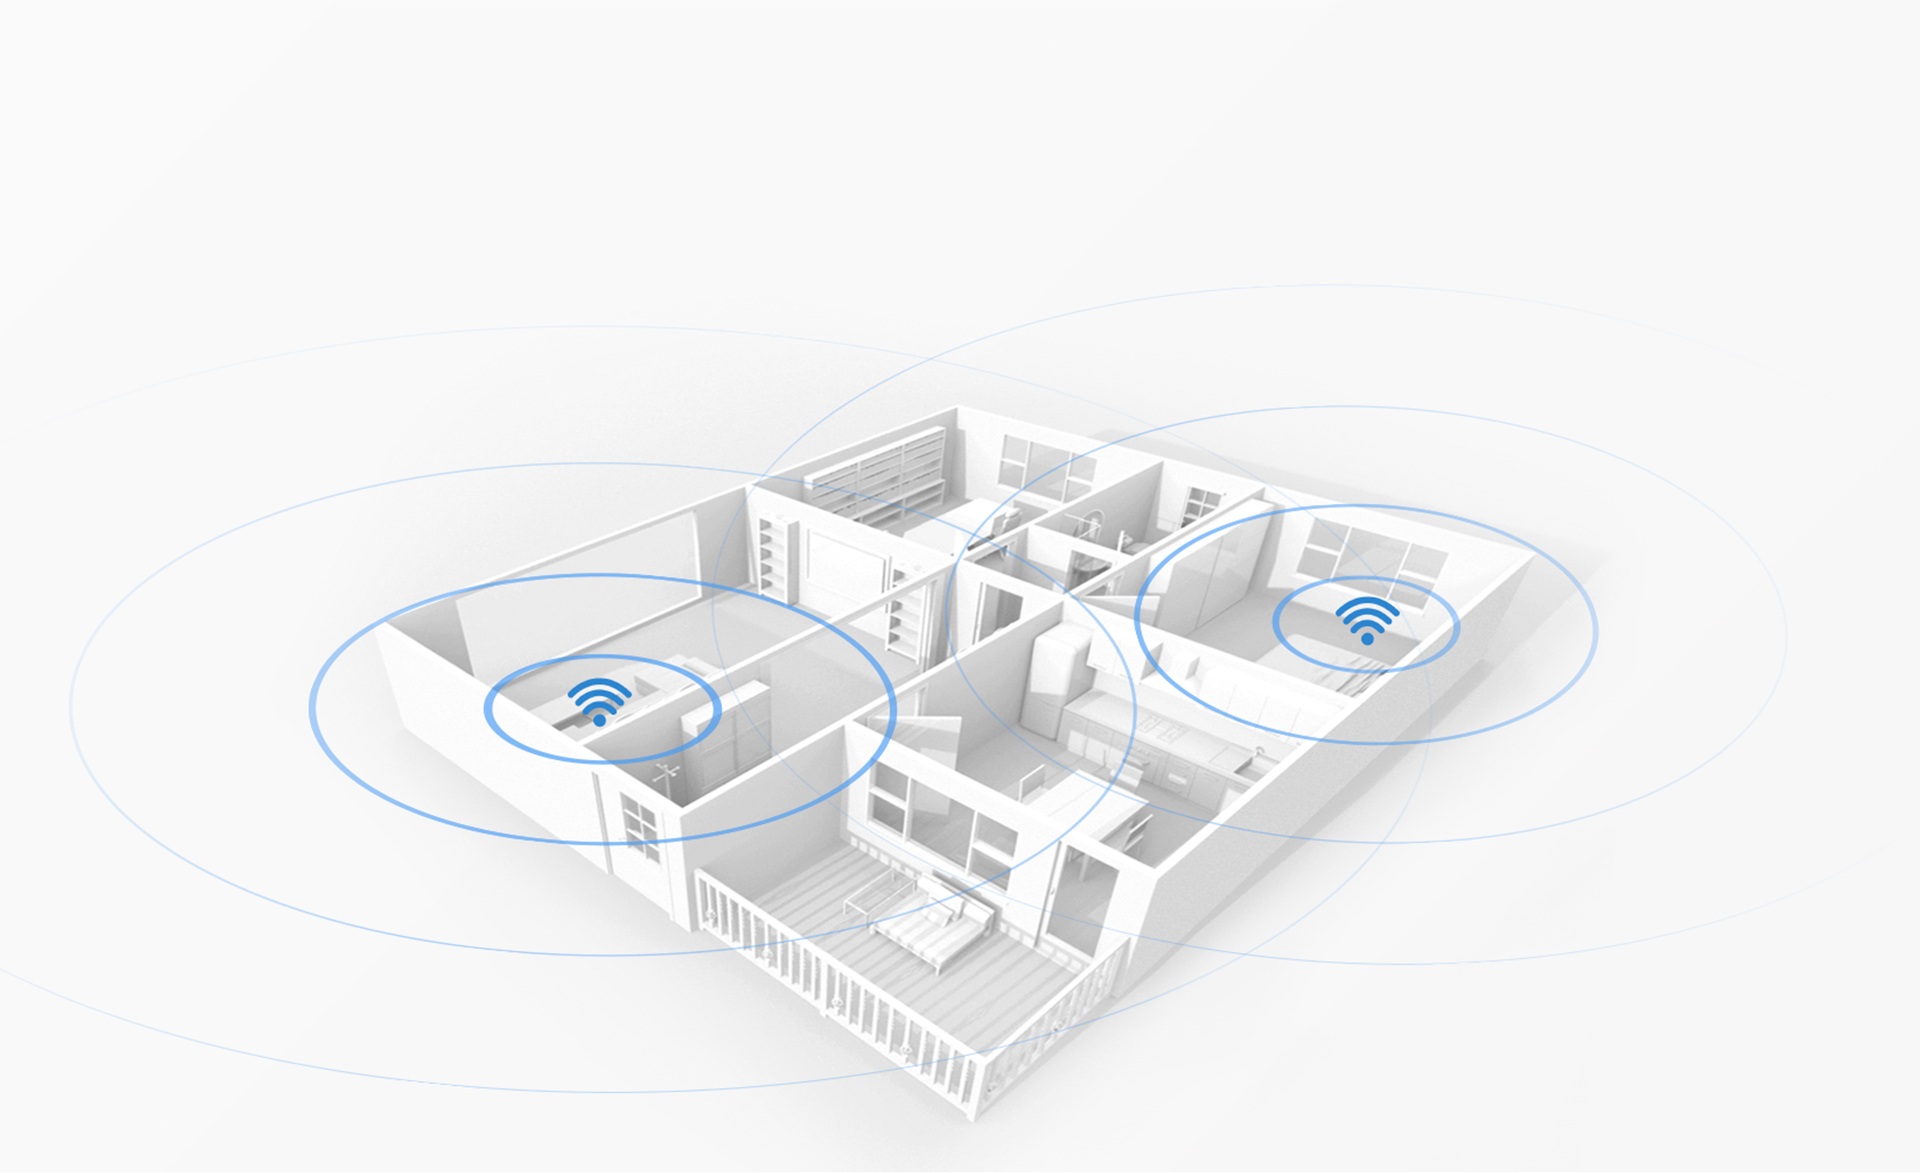 Multi-router mesh networking enables greater Wi-Fi coverage